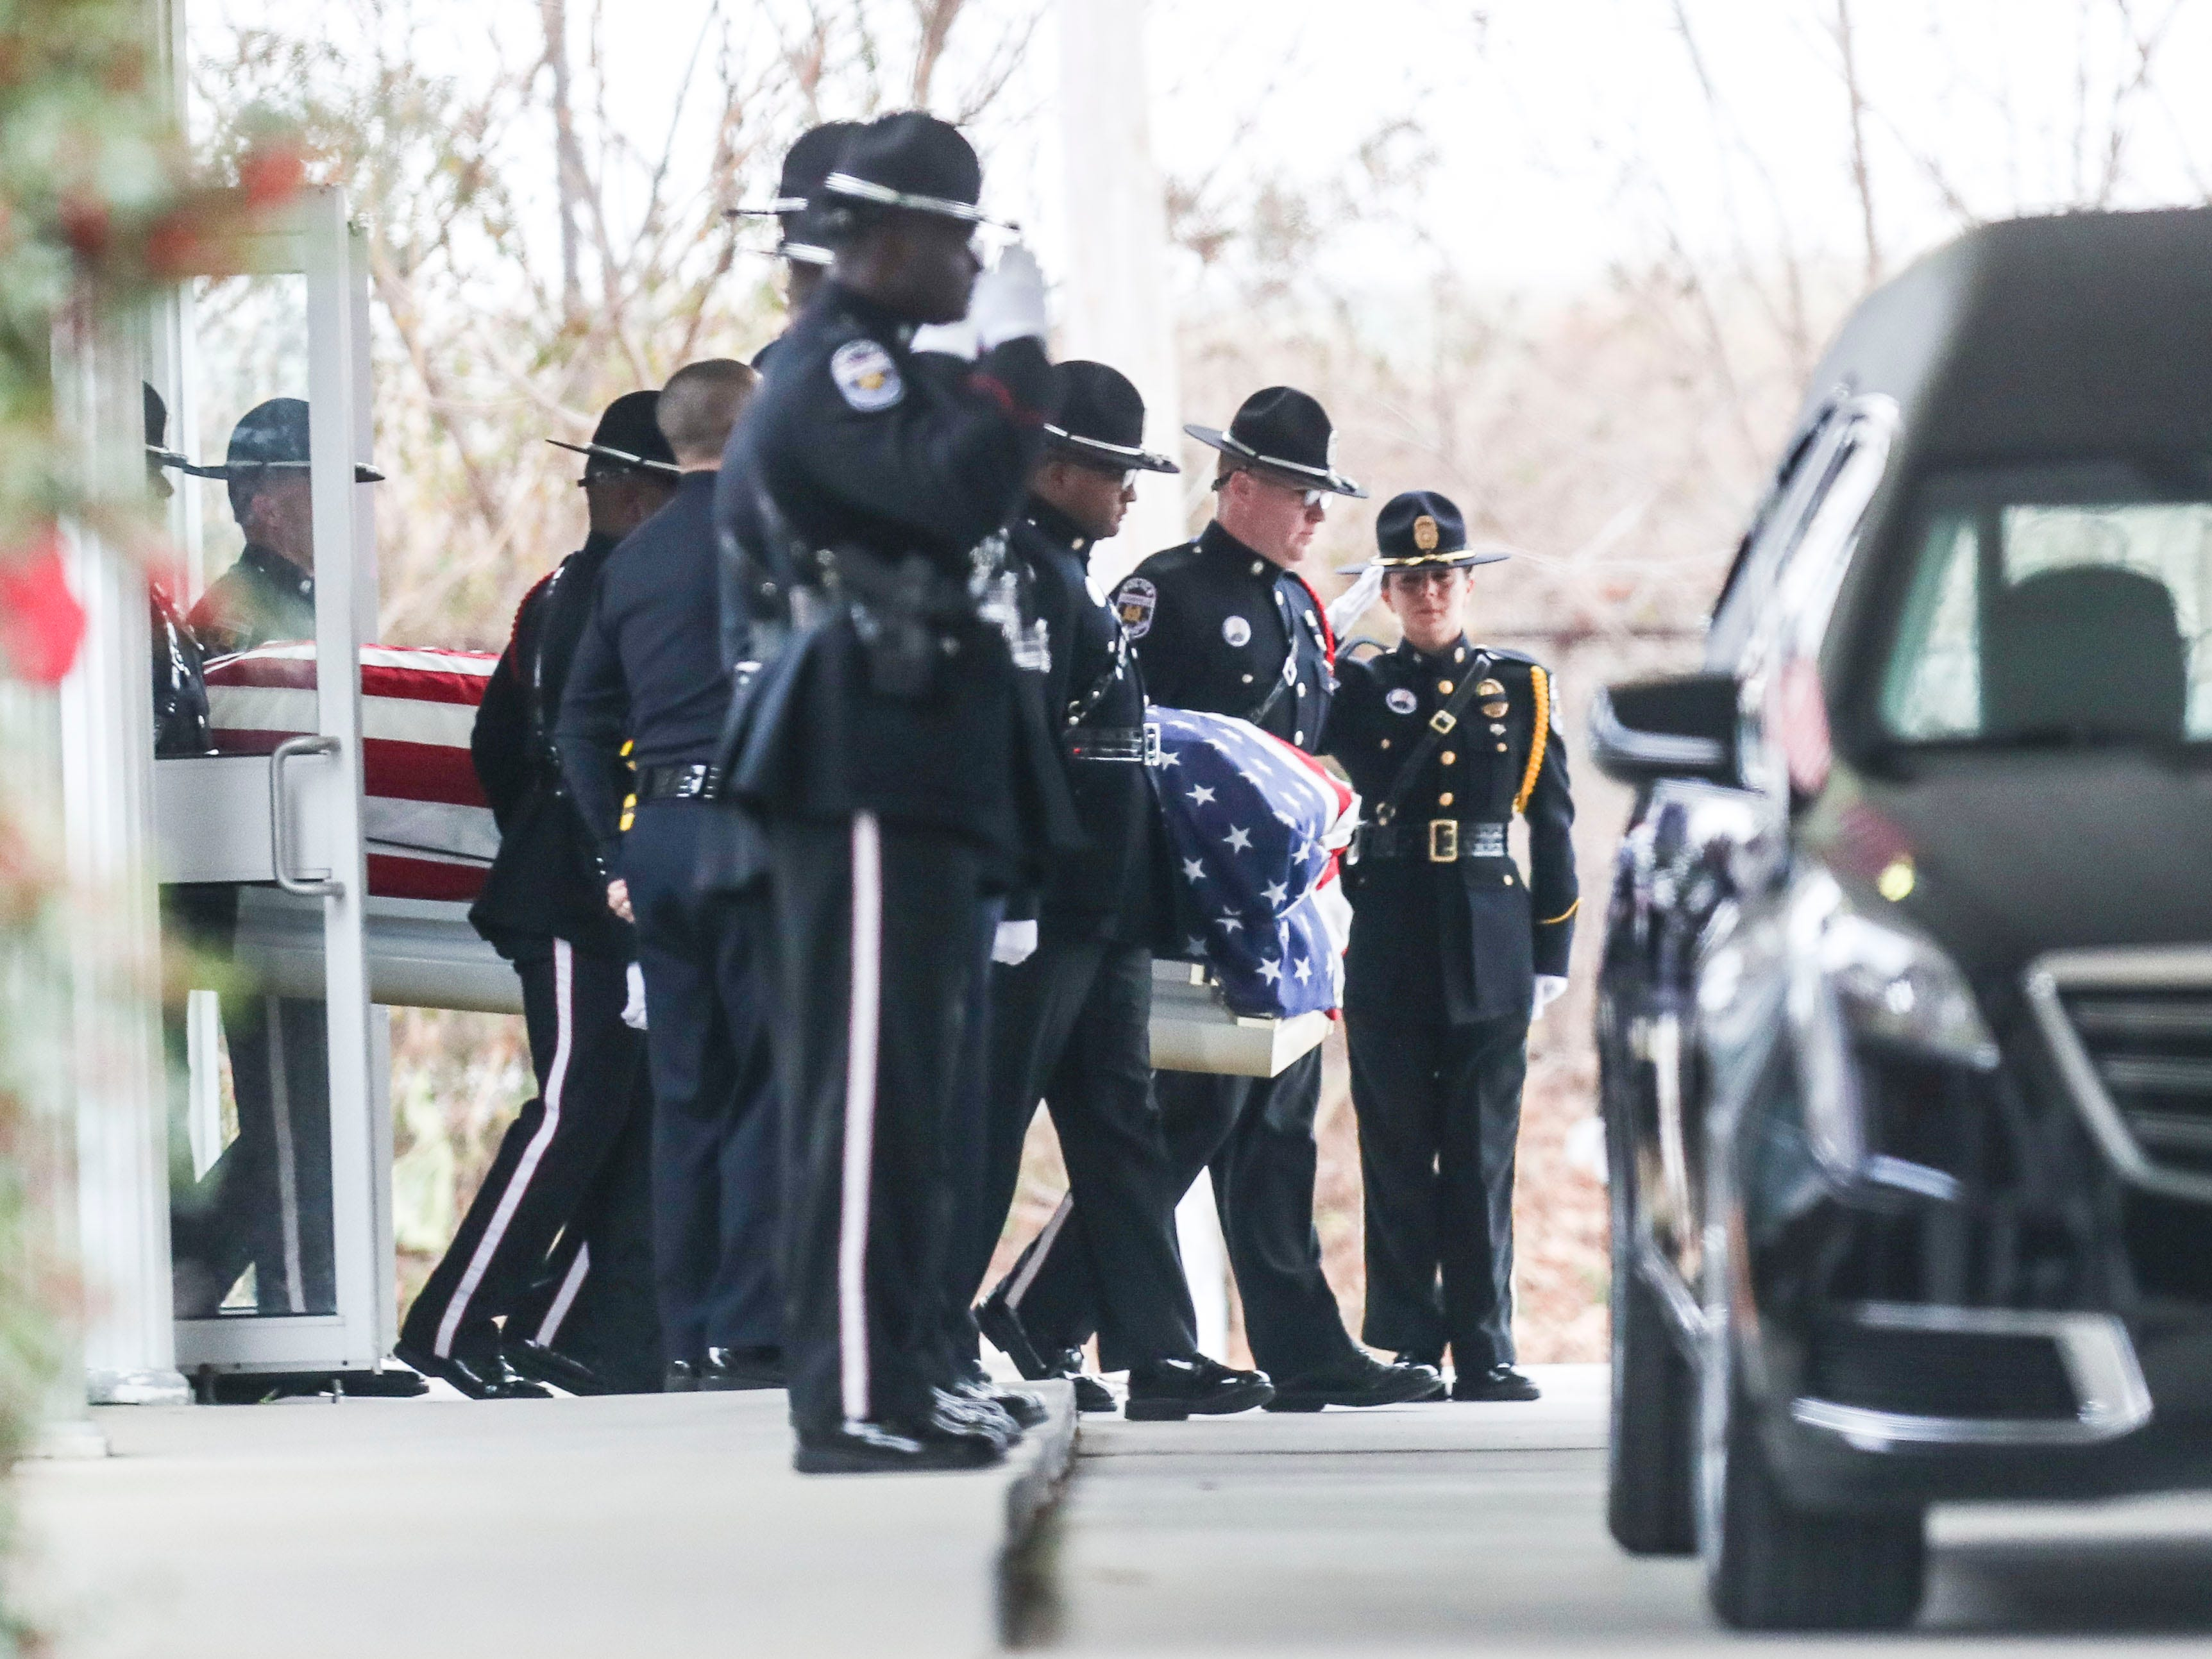 Louisville Metro Police carry the flag-draped coffin of Detective Deidre Mengedoht to the hearse Saturday morning at O.D. White Funeral home on South Third Street before her last tour through the neighborhoods she patrolled as well as the Second District headquarters. Dec. 29, 2018